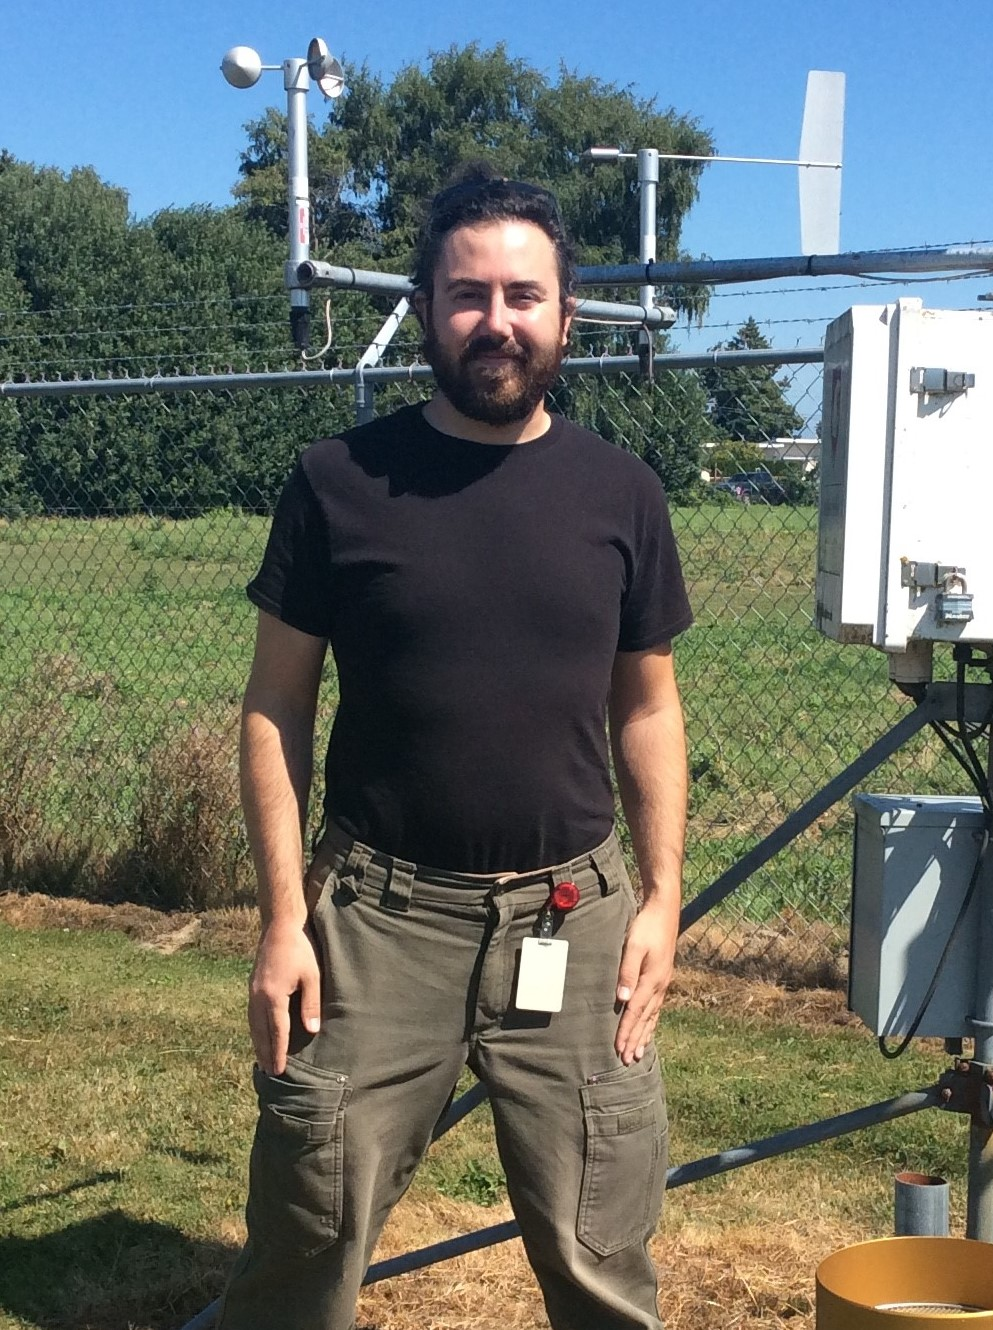 Contezac poses in front of a weather station, that includes a wind speed indicator and other electronic equipment.